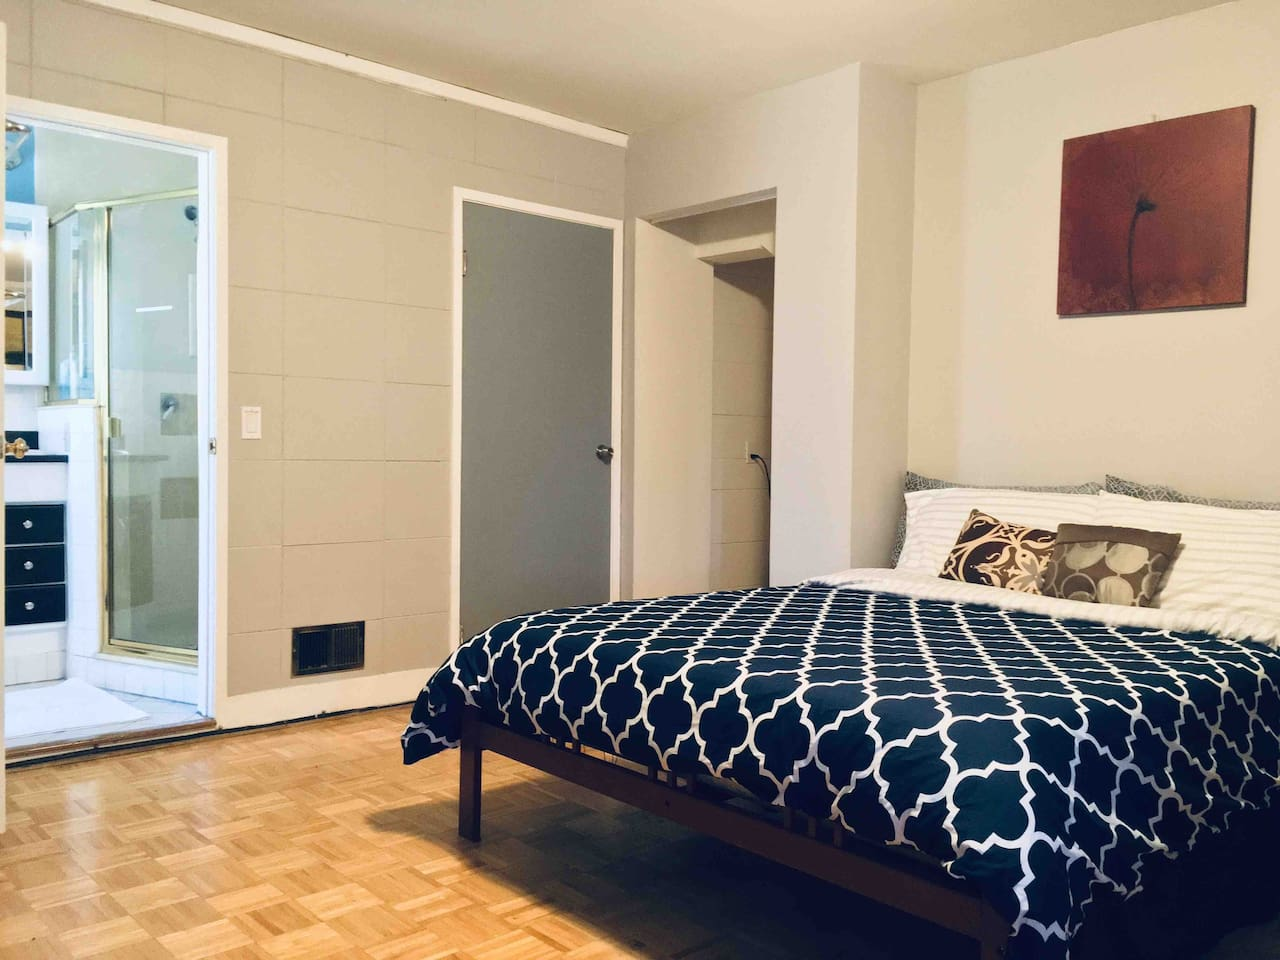 Spacious private bedroom with large queen-sized bed and full en-suite bathroom. Includes a kitchenette with basic essentials (coffee maker, microwave, utensils, bowls, cups, plates, water kettle, assortment of teas and coffee)